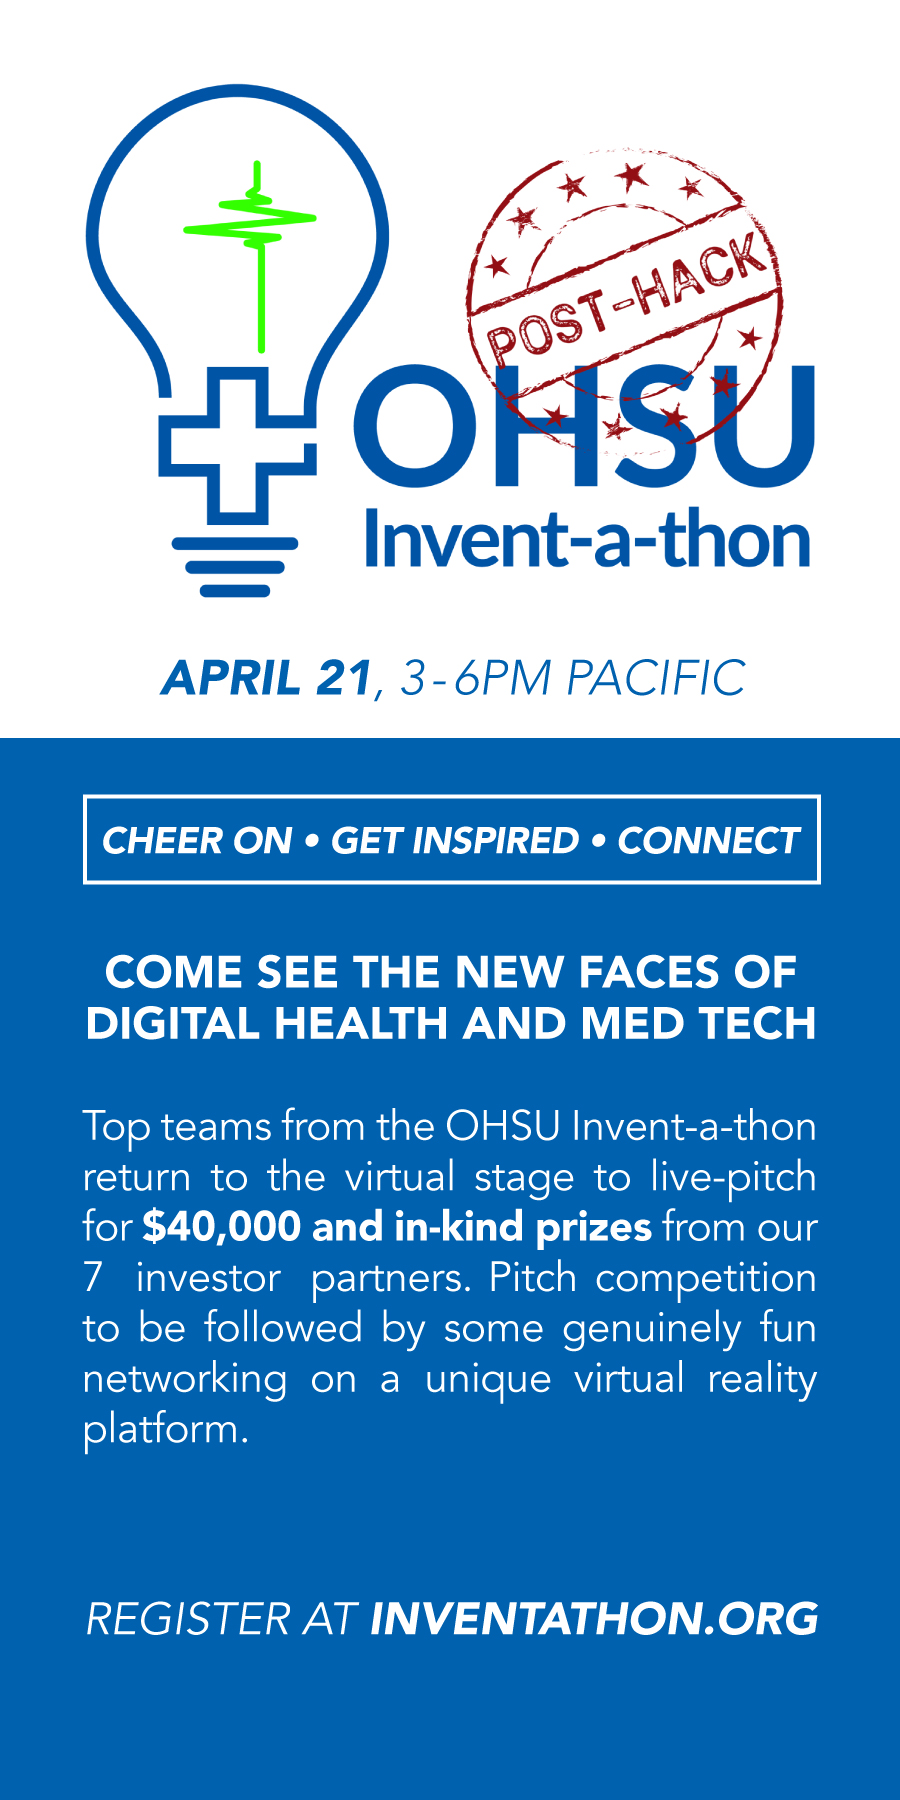 Invent-a-thon